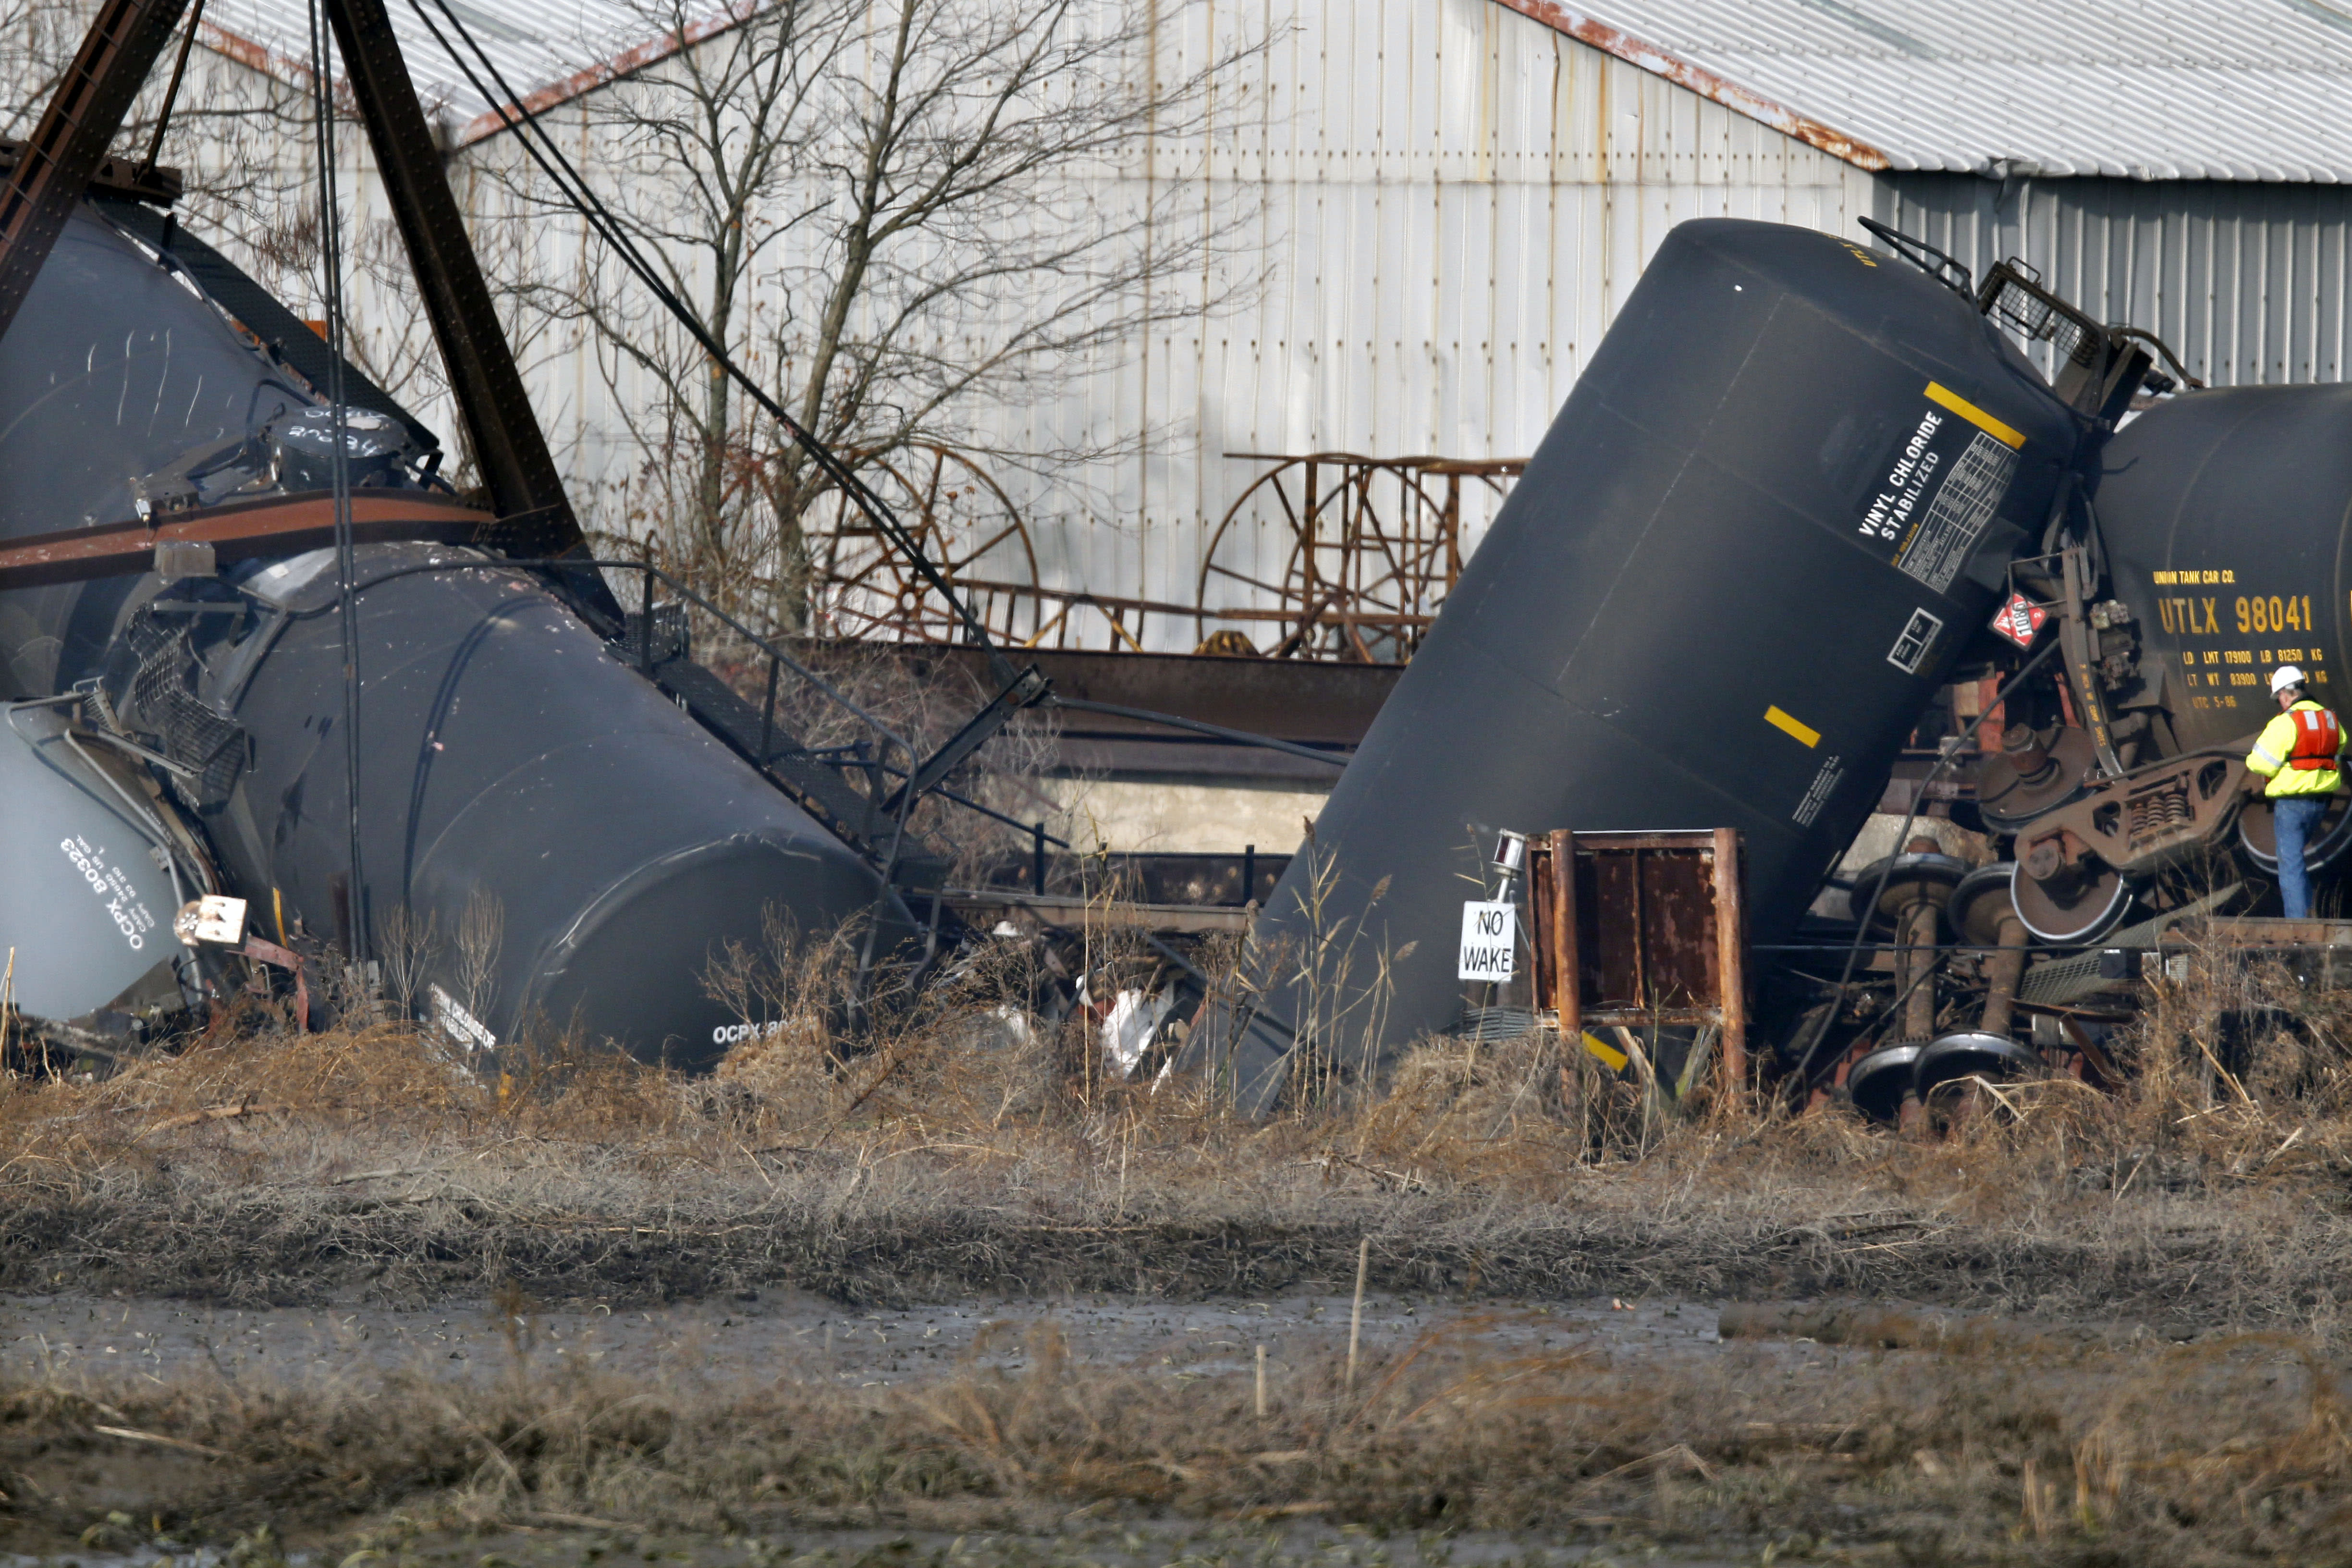 Canadian Natl crude train derails in Ontario, on fire